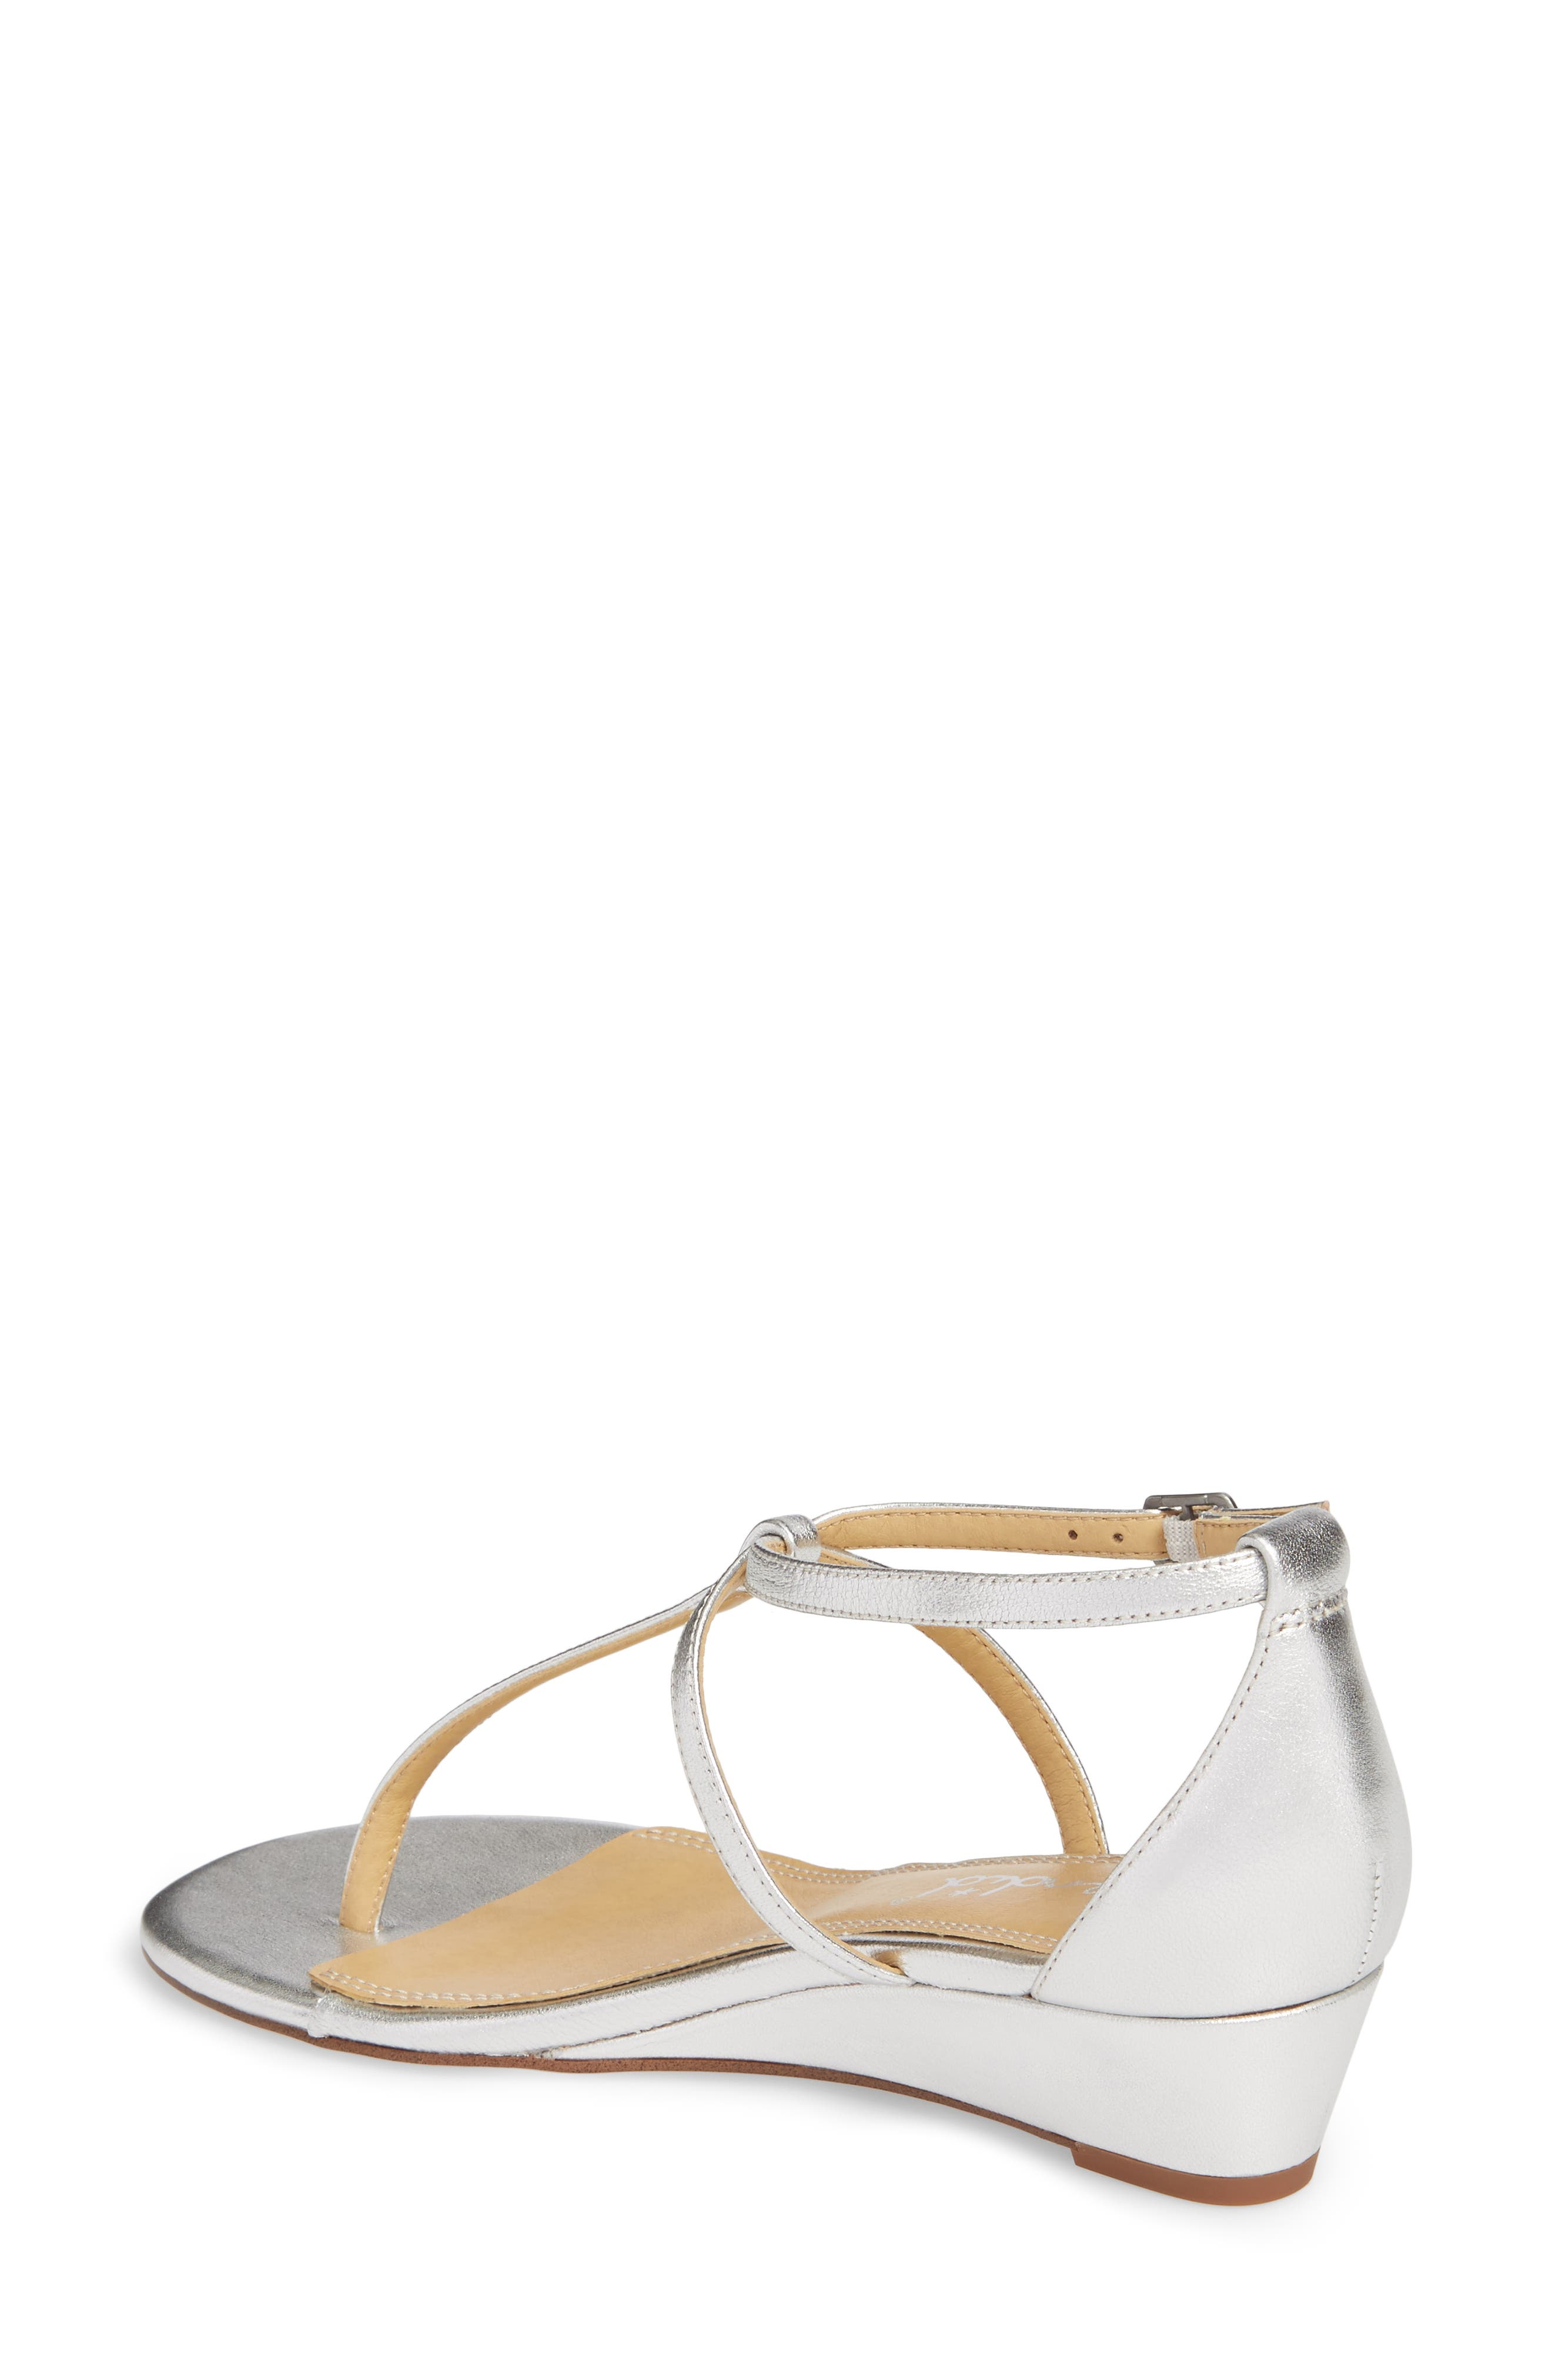 Bryce T-Strap Wedge Sandal,                             Alternate thumbnail 2, color,                             Silver Metallic Leather